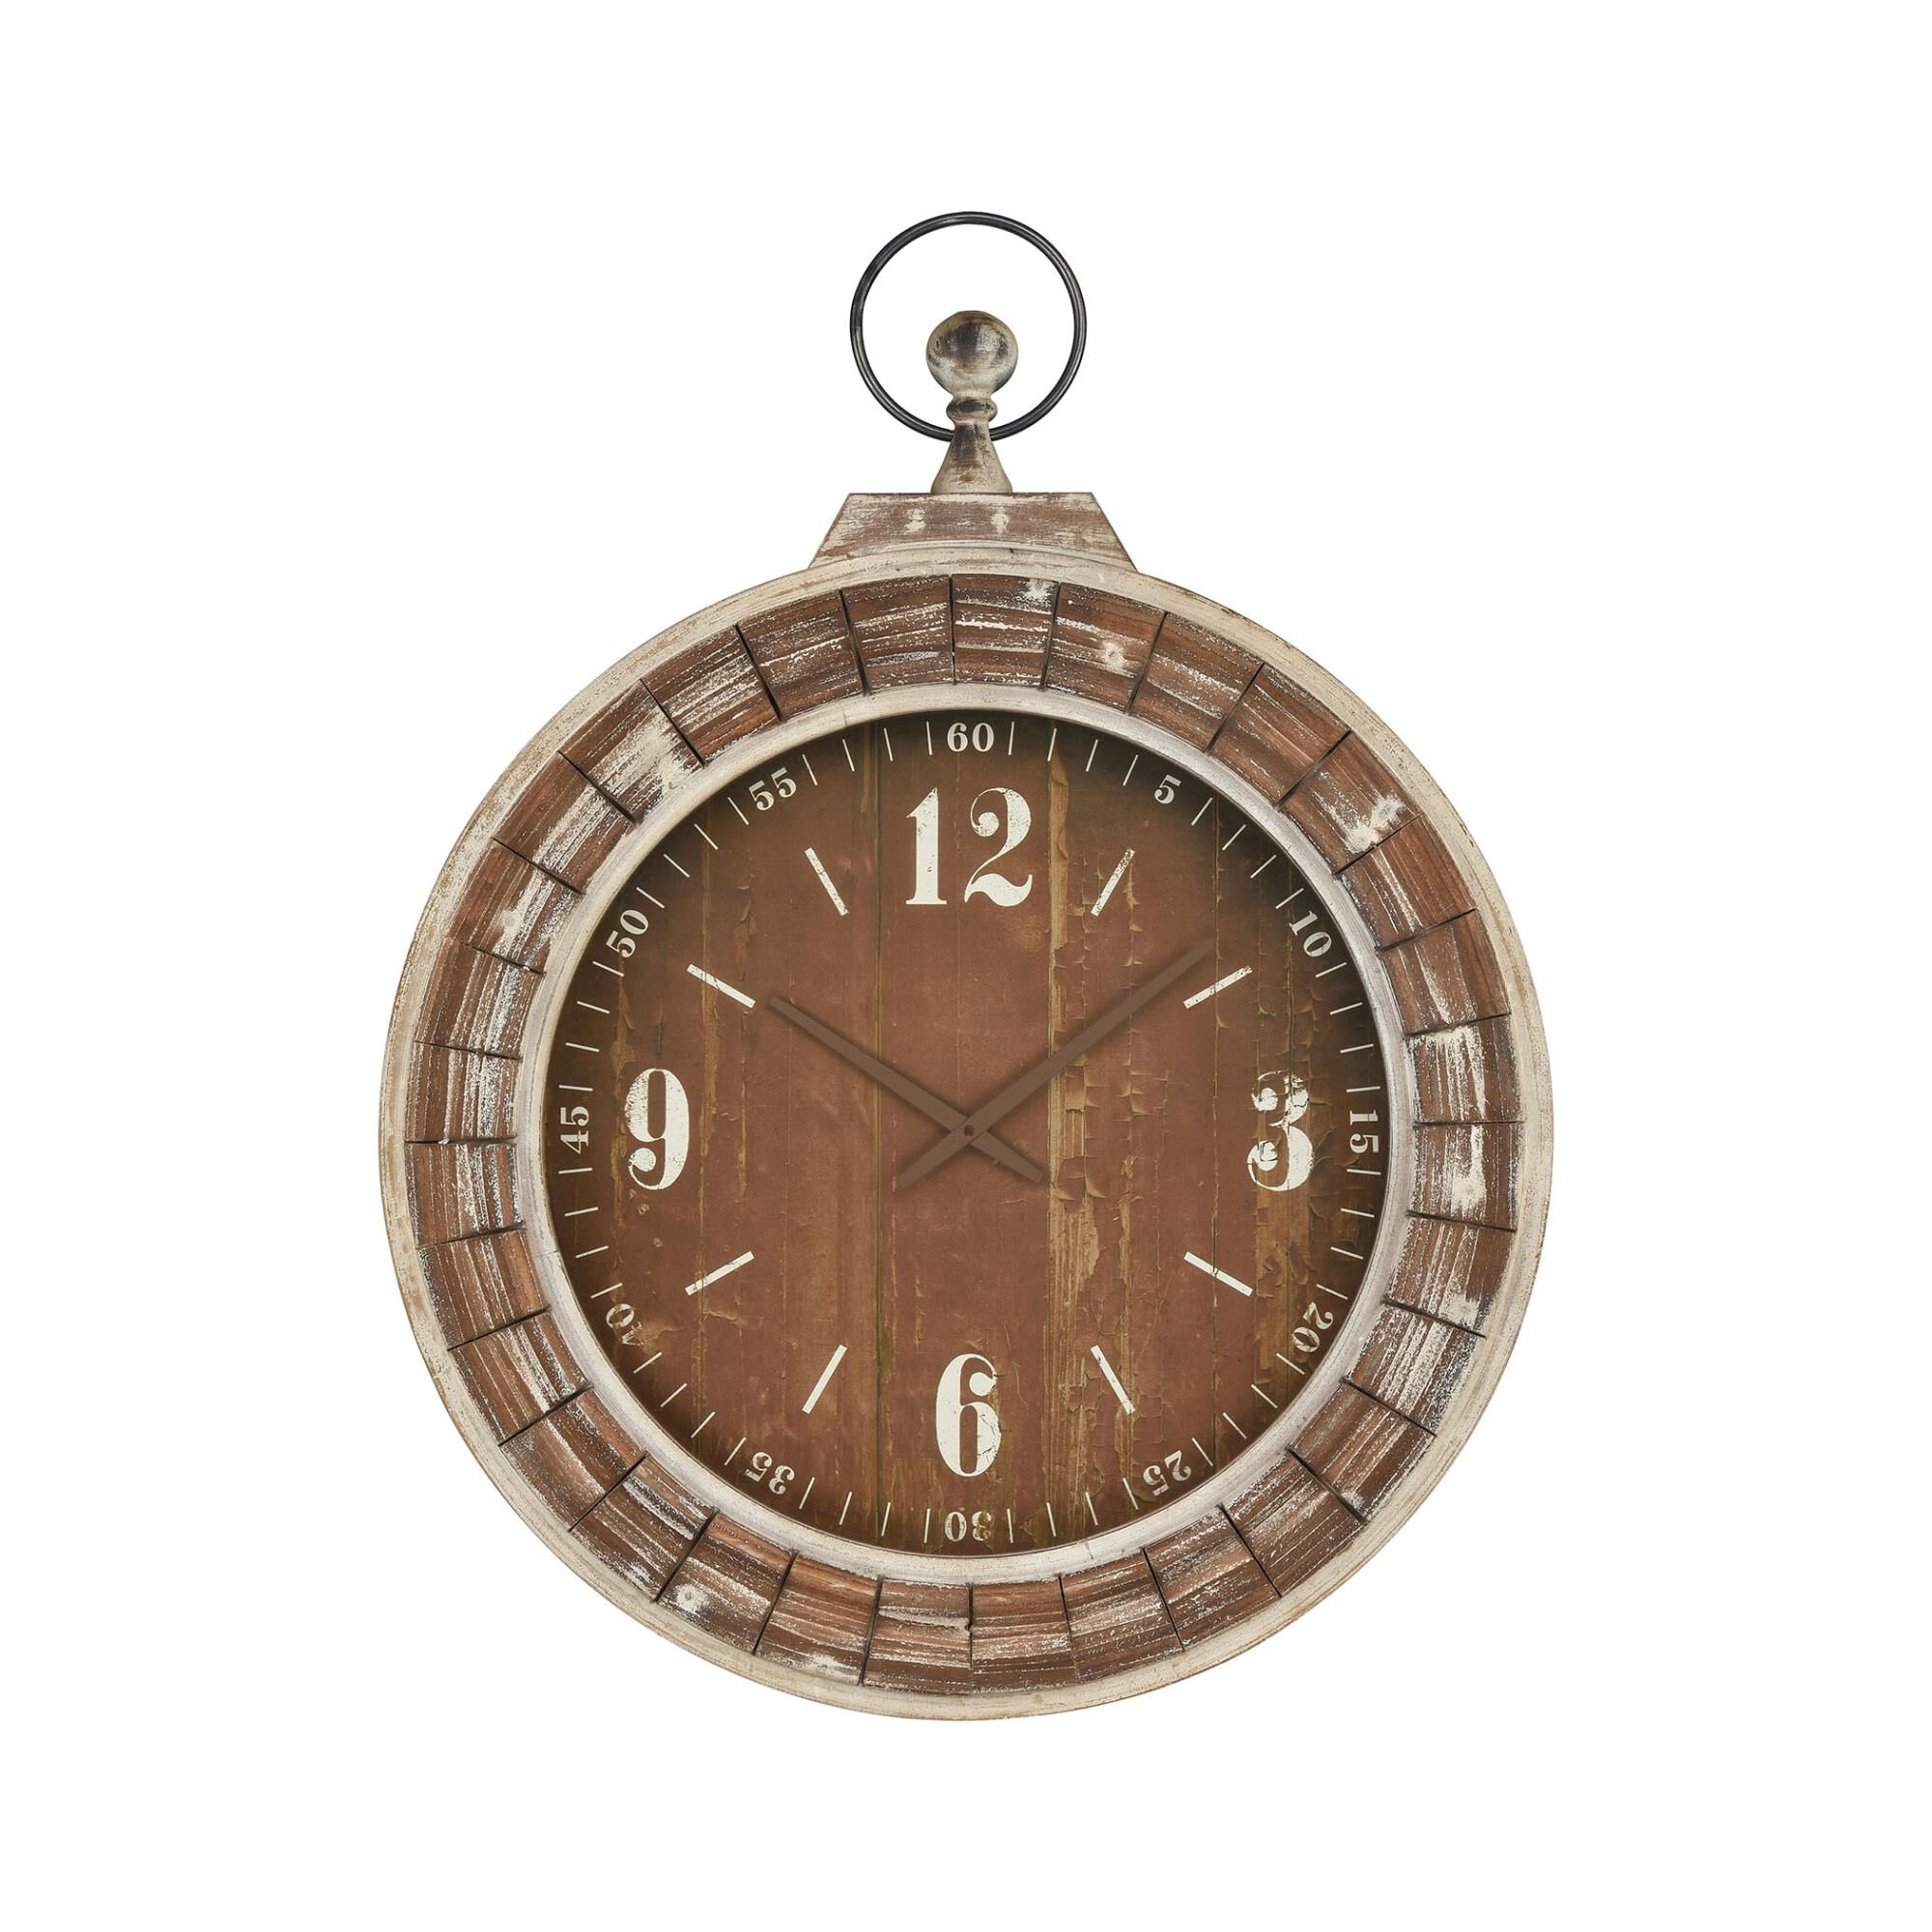 Sterling Industries Quartermaster Wall Clock Quartermaster - 3214-1014 -Traditional Wall Clock Sterling